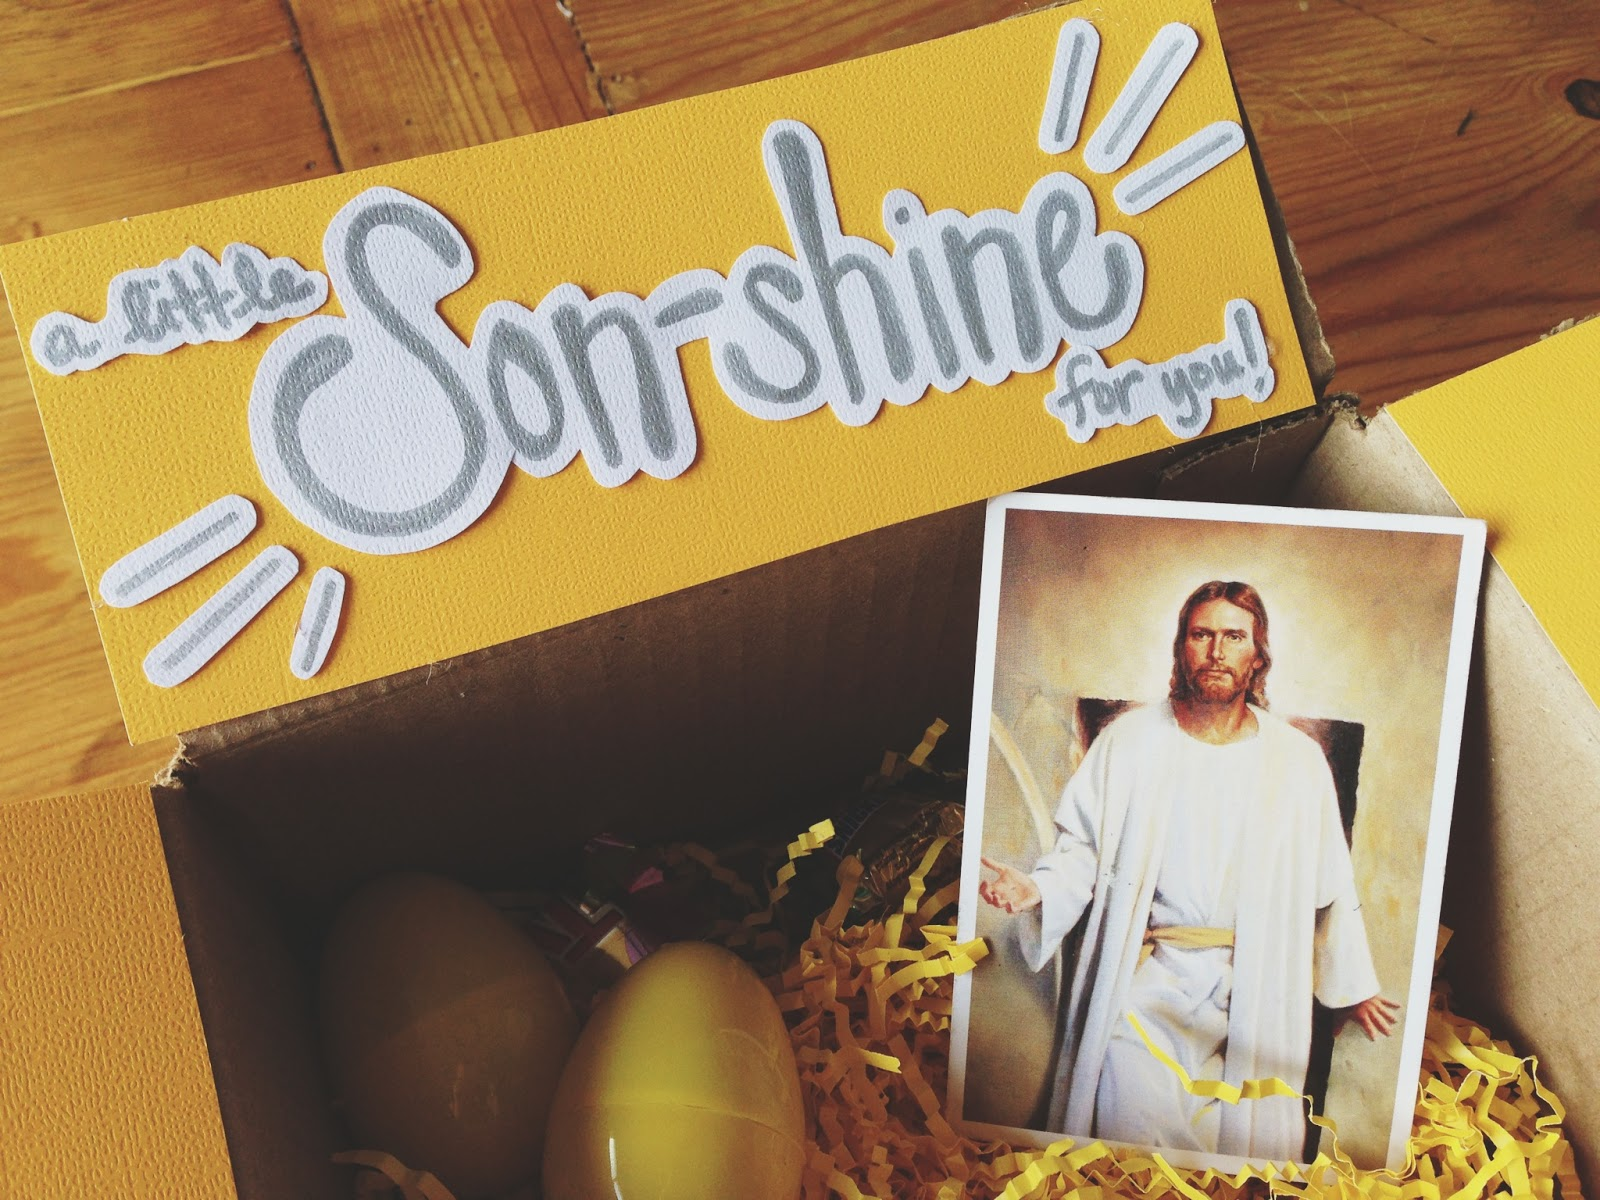 Life is sweet son shine easter package for our missionary son shine easter package for our missionary negle Images